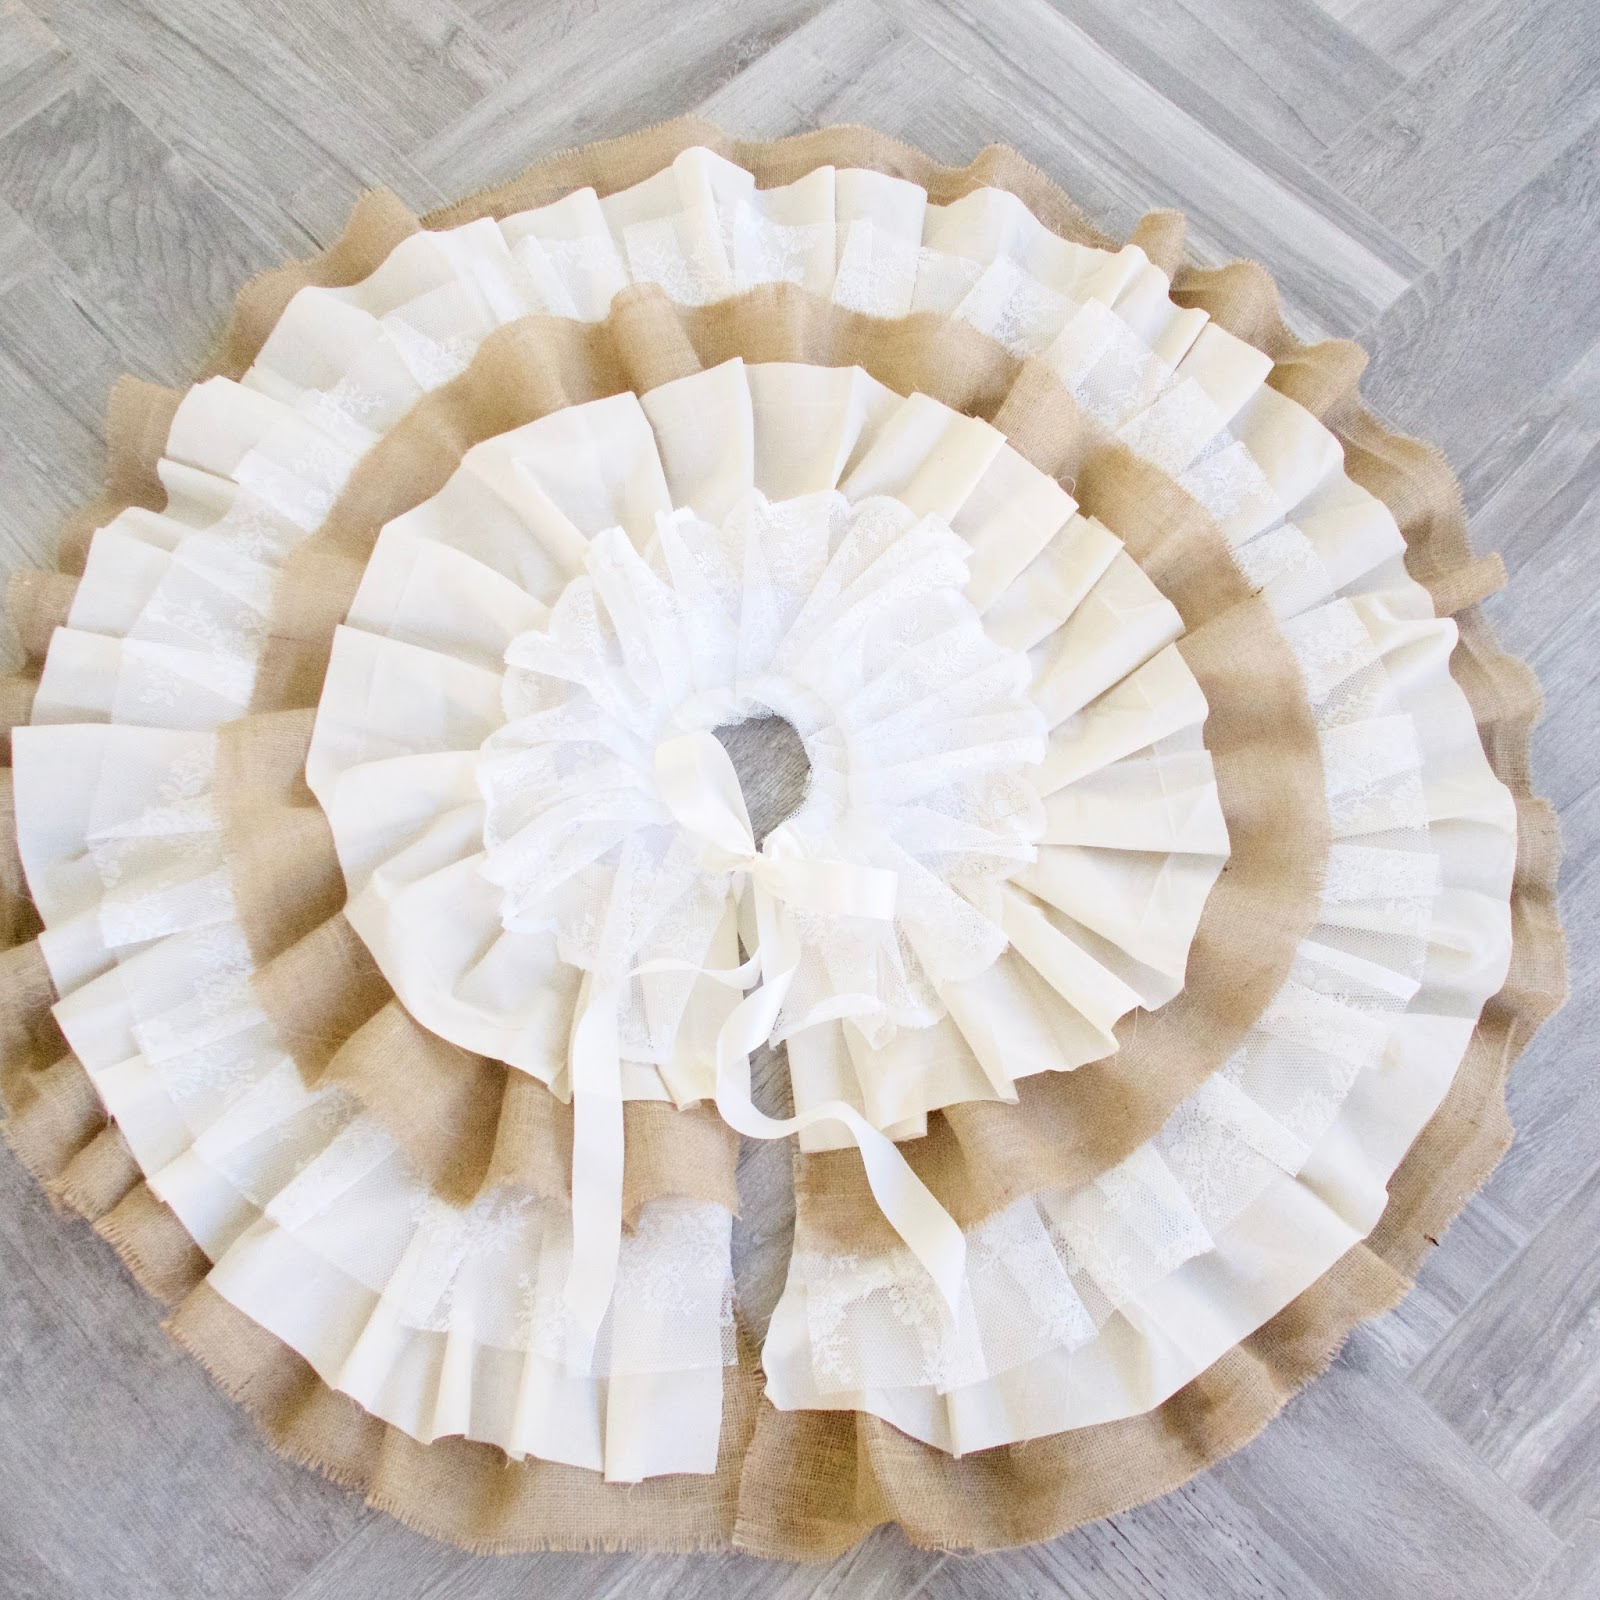 Do it yourself divas diy burlap and lace christmas tree skirt merry christmas our beautiful farmhouse burlap and lace tree skirt is easy to make and oh so stunning solutioingenieria Image collections